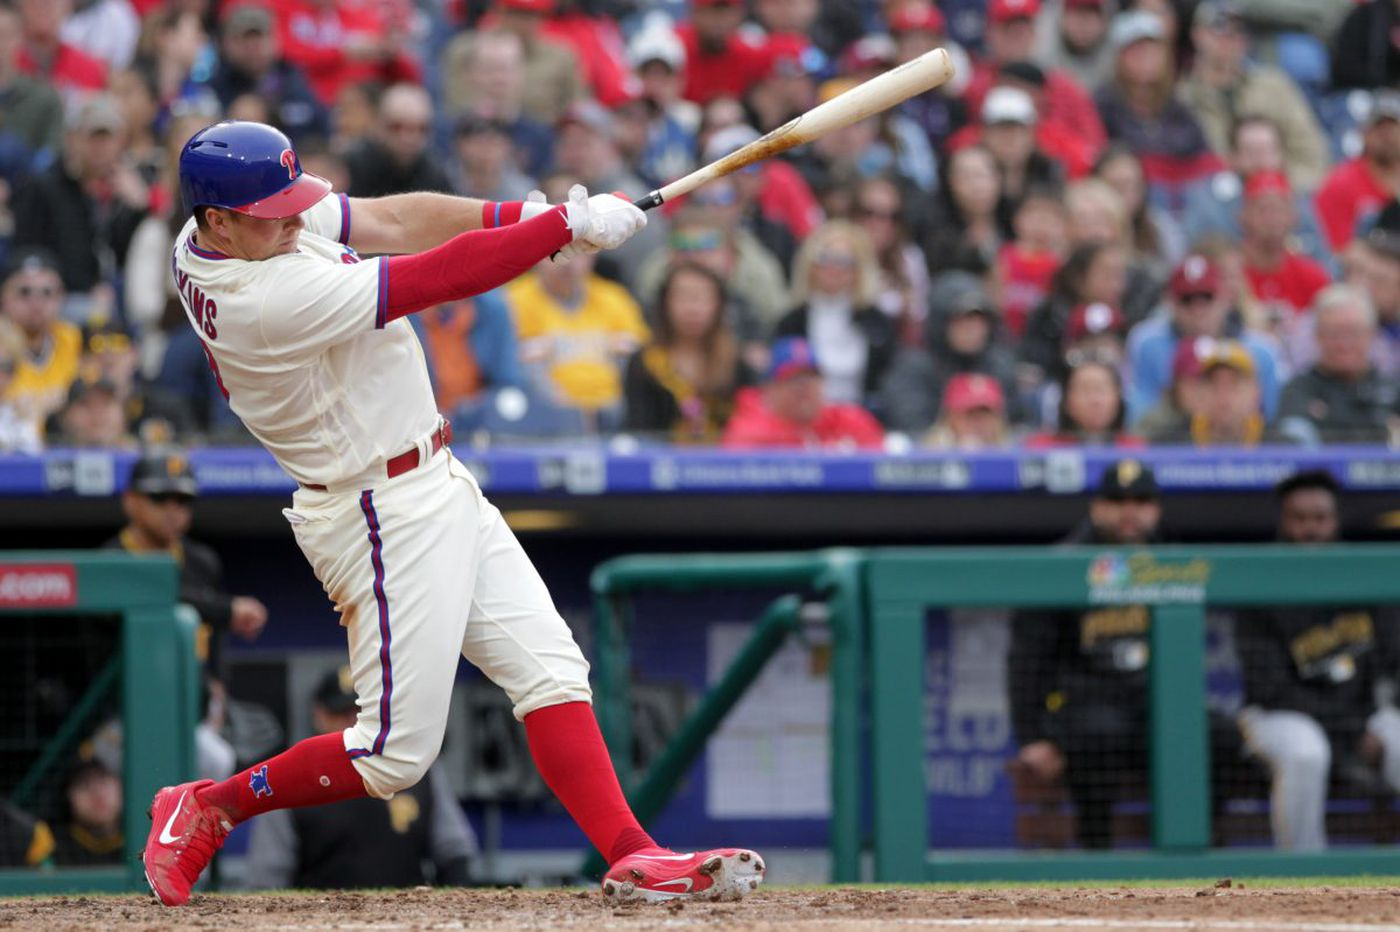 Phillies pass a test by winning series against Pirates